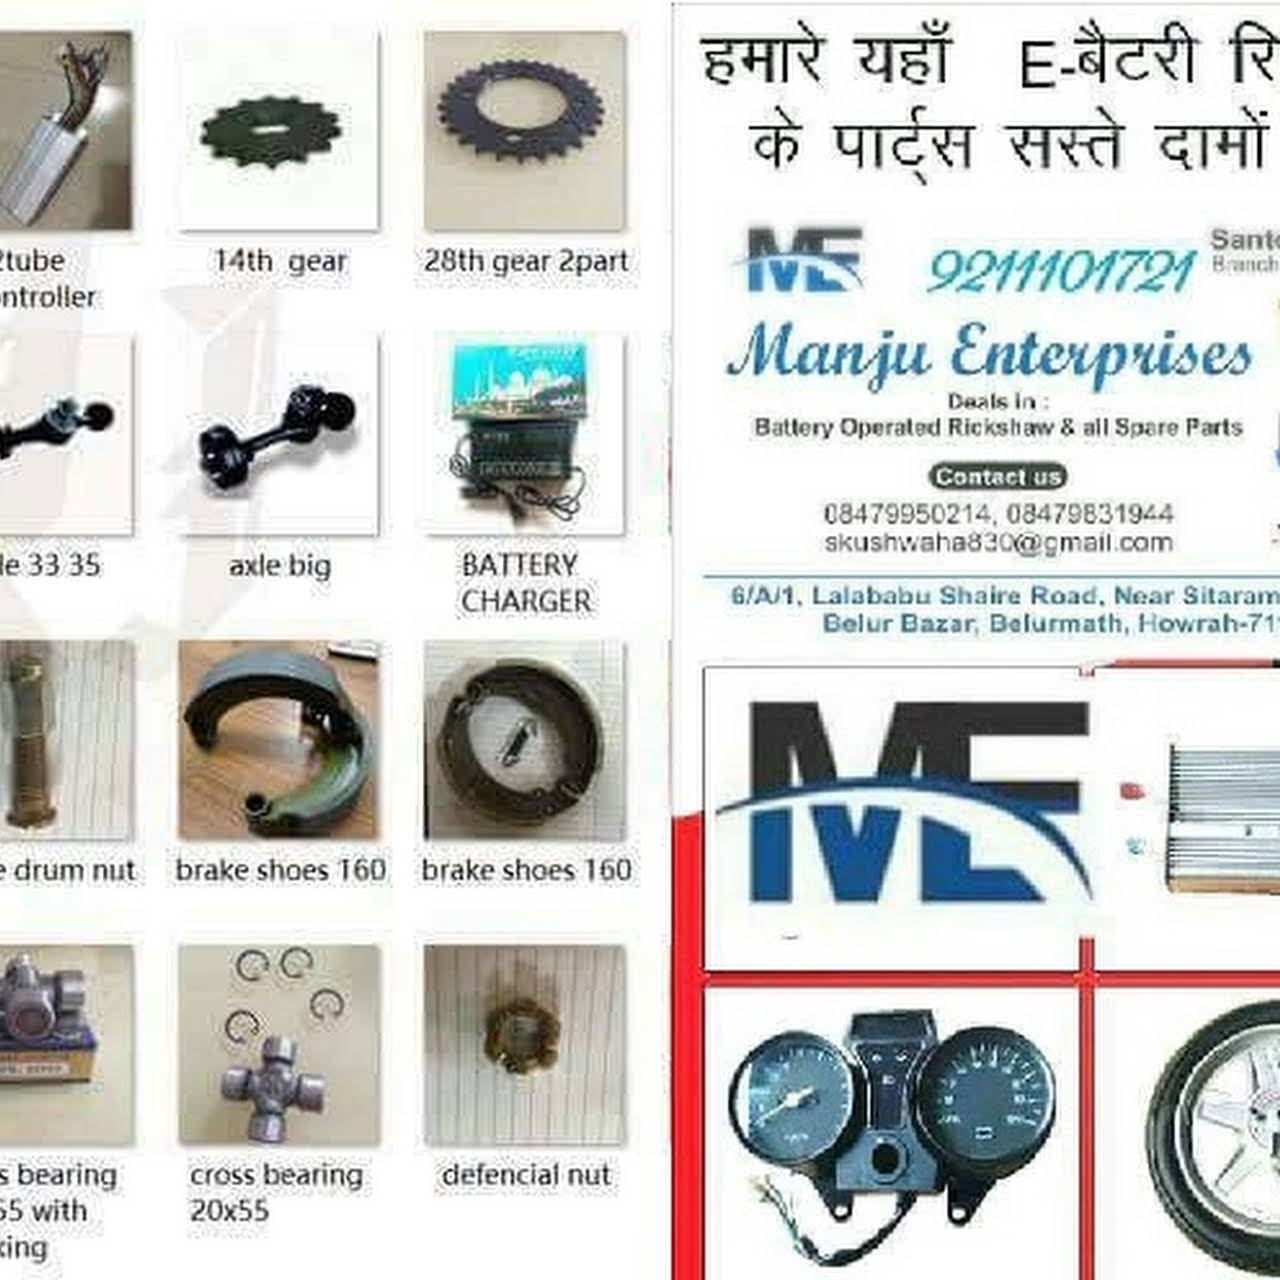 Manju Enterprises - Automobile Spare parts Wholesaler in Kolkata